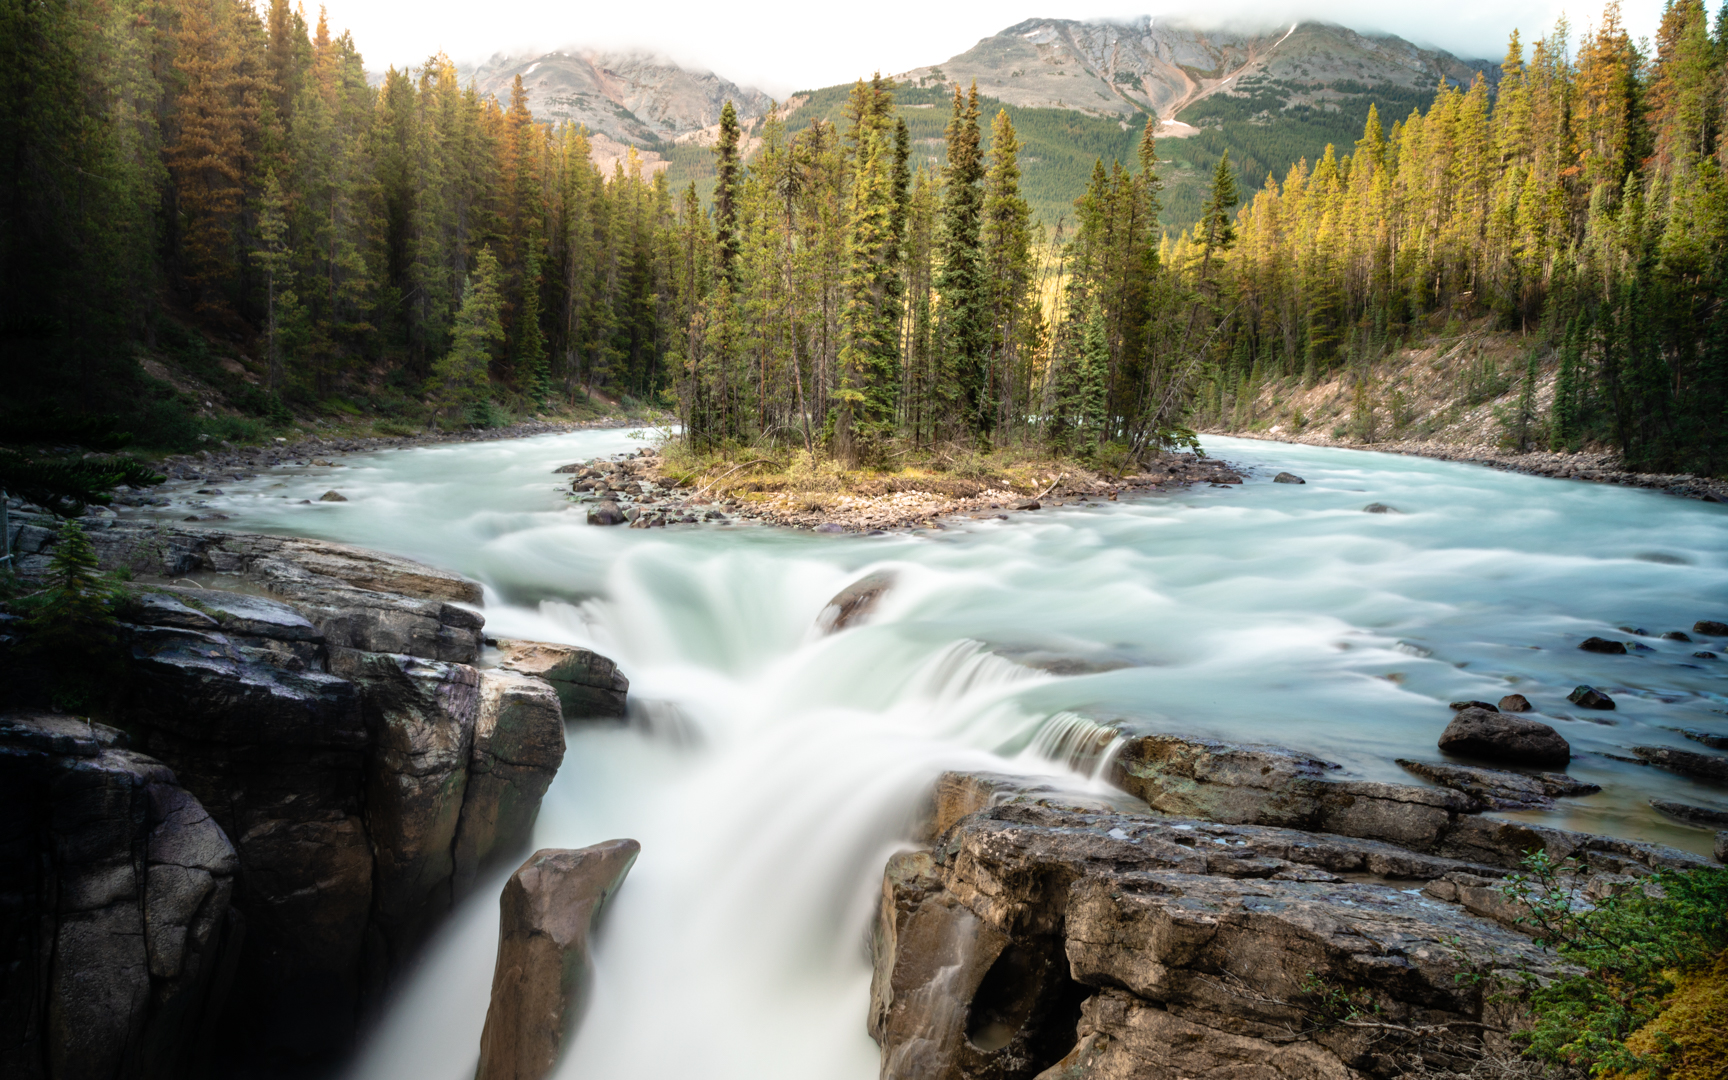 We still can't stop talking about Canada. The Canadian Rockies have breathtaking scenery, like Sunwapta Falls, at every turn!